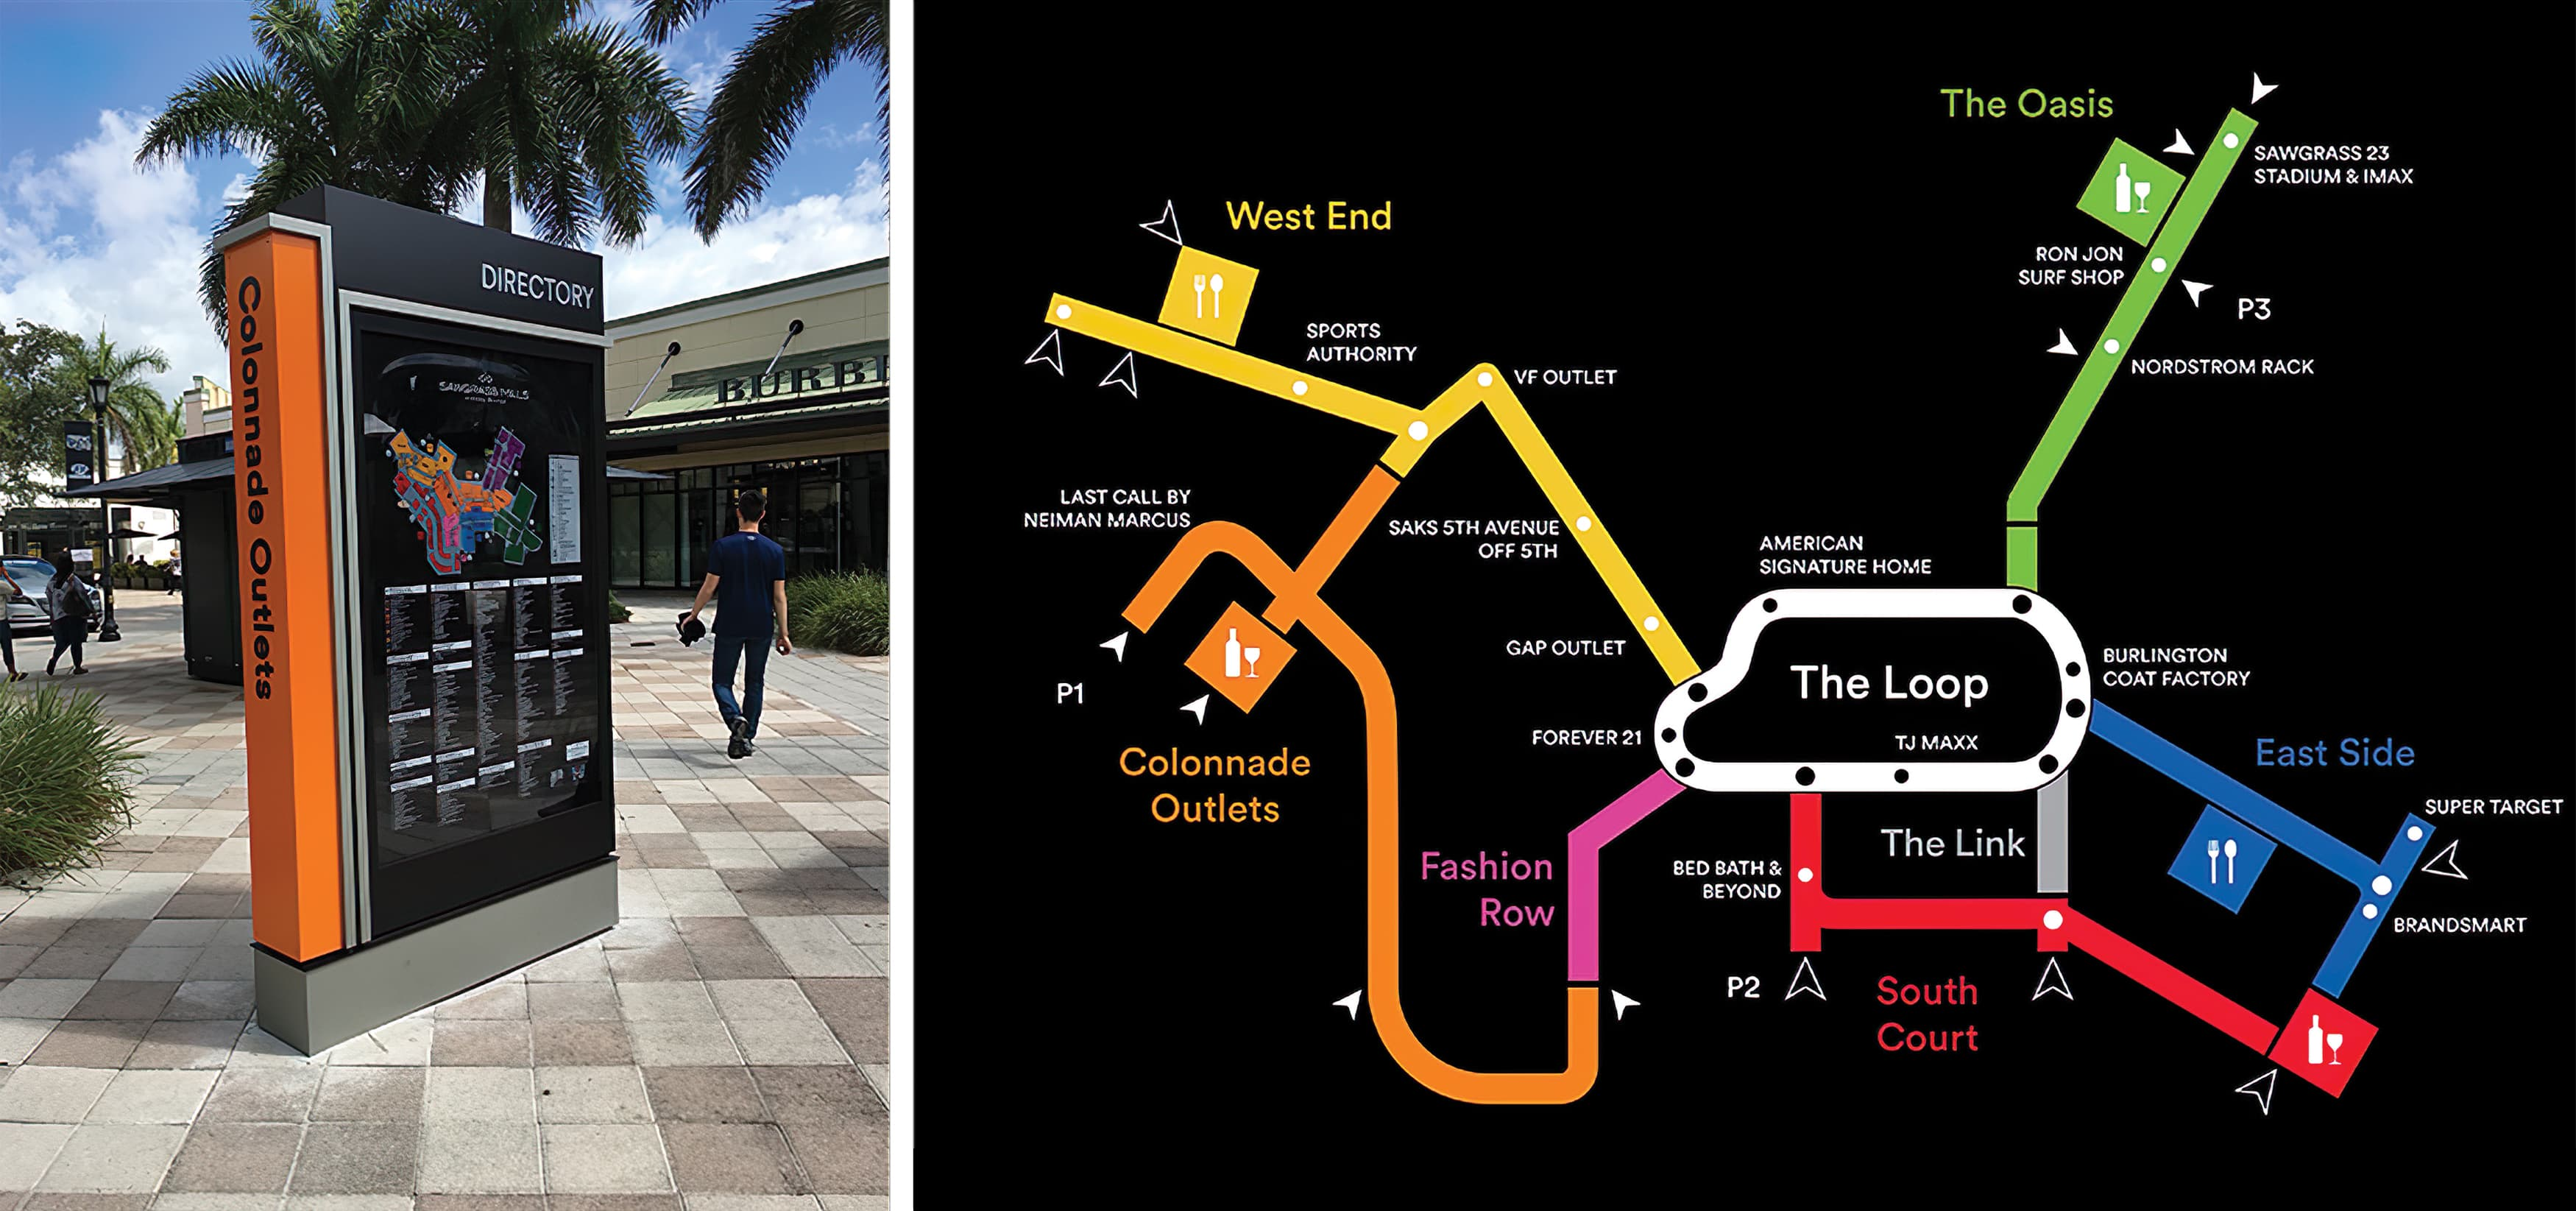 RSM Design worked to develop wayfinding signage, environmental graphics, and placemaking elements for Sawgrass Mills, a Simon Center located in Sunrise, Florida. Retail Directory.